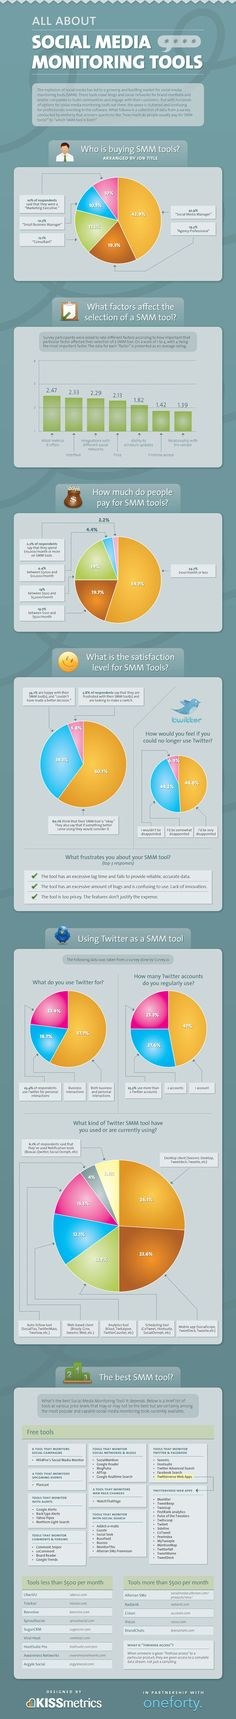 ♥✤♥ Monitoring Tools - ♥✤♥ Stay up-to-date with social media: Cool Infographic on Social Media Monitoring. This infographic is based on a survey of 150 social media professionals. It provides a list of popular social media & insights into how use them. Social Marketing, Inbound Marketing, Marketing Trends, Marketing Tools, Internet Marketing, Online Marketing, Content Marketing, Business Marketing, Marketing Strategies